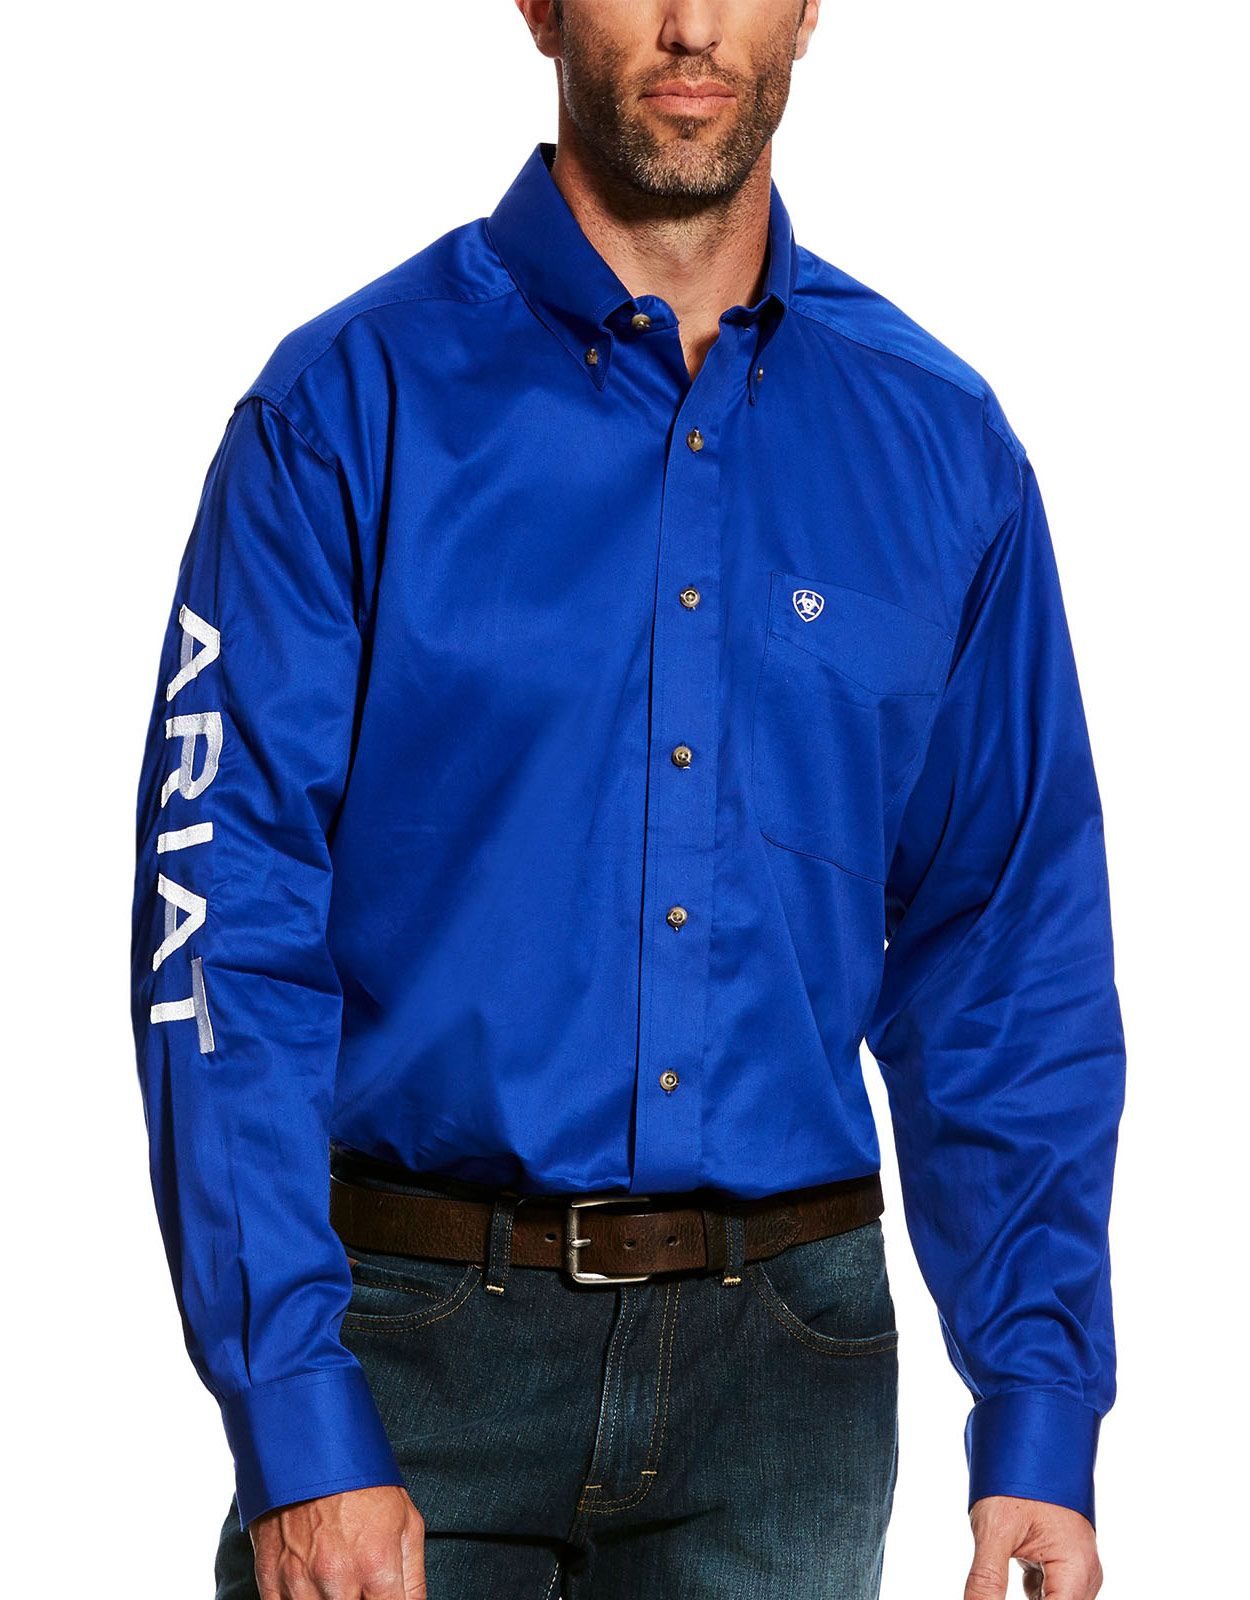 Ariat Men's Casual Series Classic Fit Team Logo Twill Long Sleeve Solid Button Down Shirt - Ultramarine/White